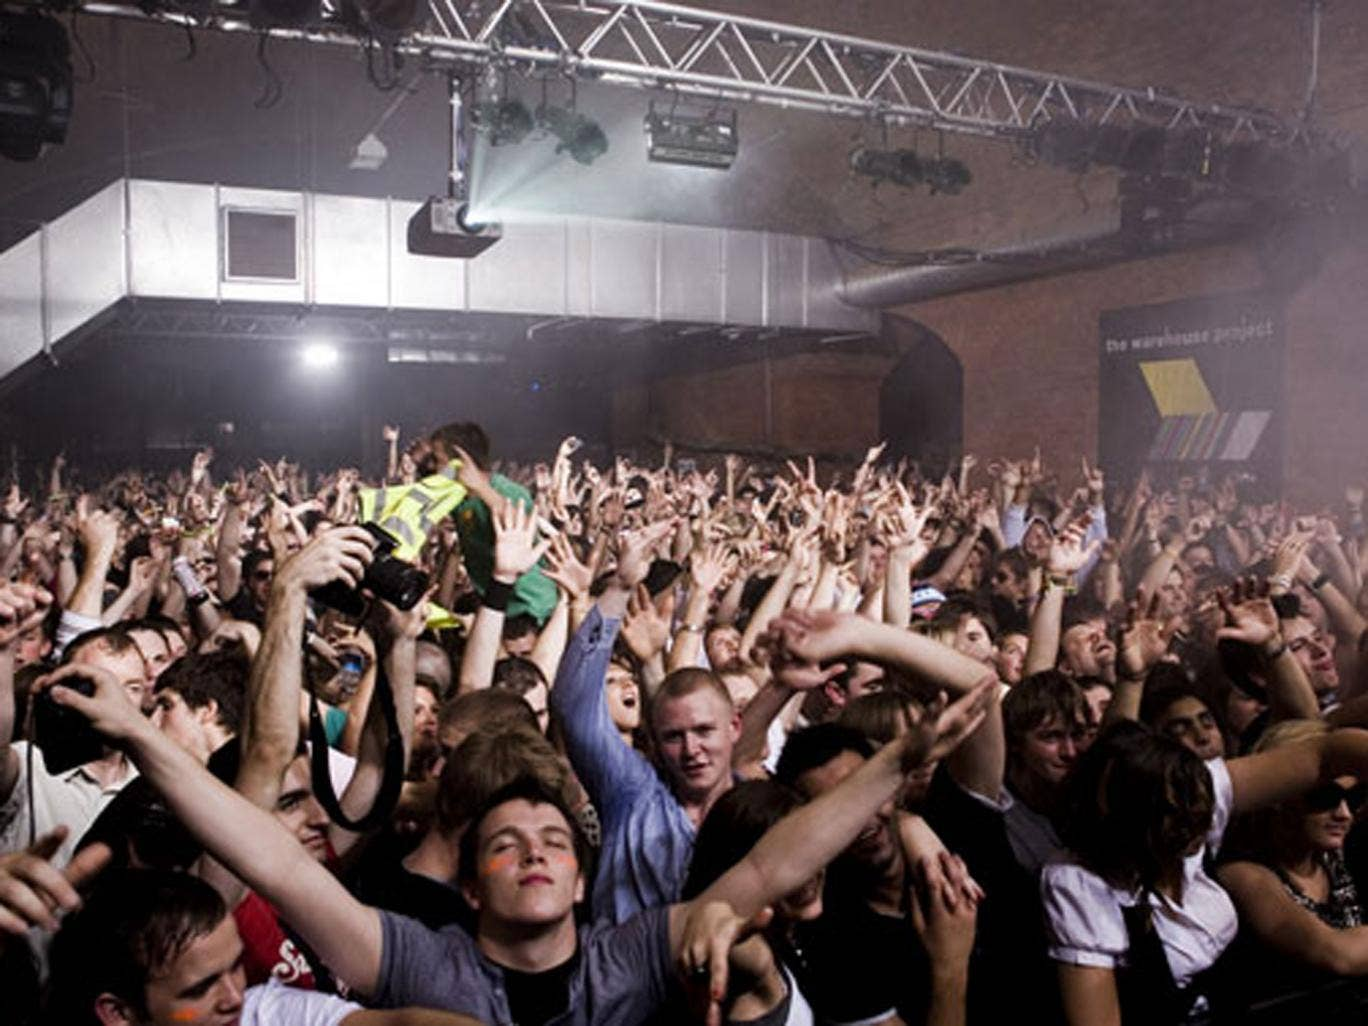 One person died and five other people were taken to hospital after a night at The Warehouse Project in Trafford, Manchester